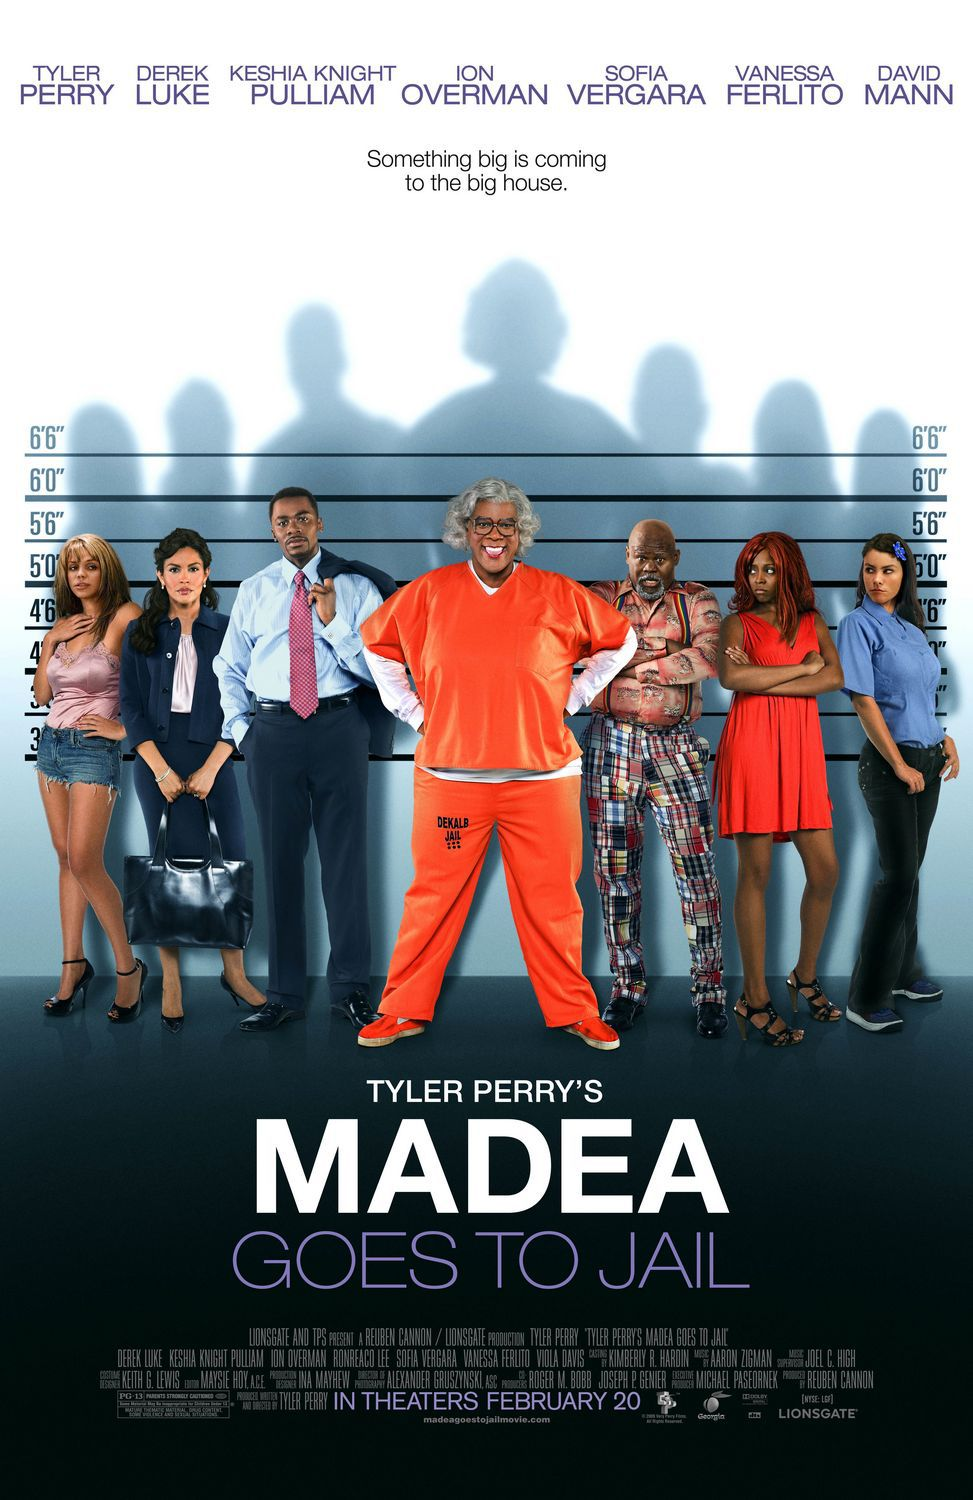 Madea goes to jail - Madea va in Prigione - Tyler Perry - Derek Luke - Keshia Knight Pulliam - Ion Overman - Sofia Vergara - Vanessa Ferlito - David Mann - film poster